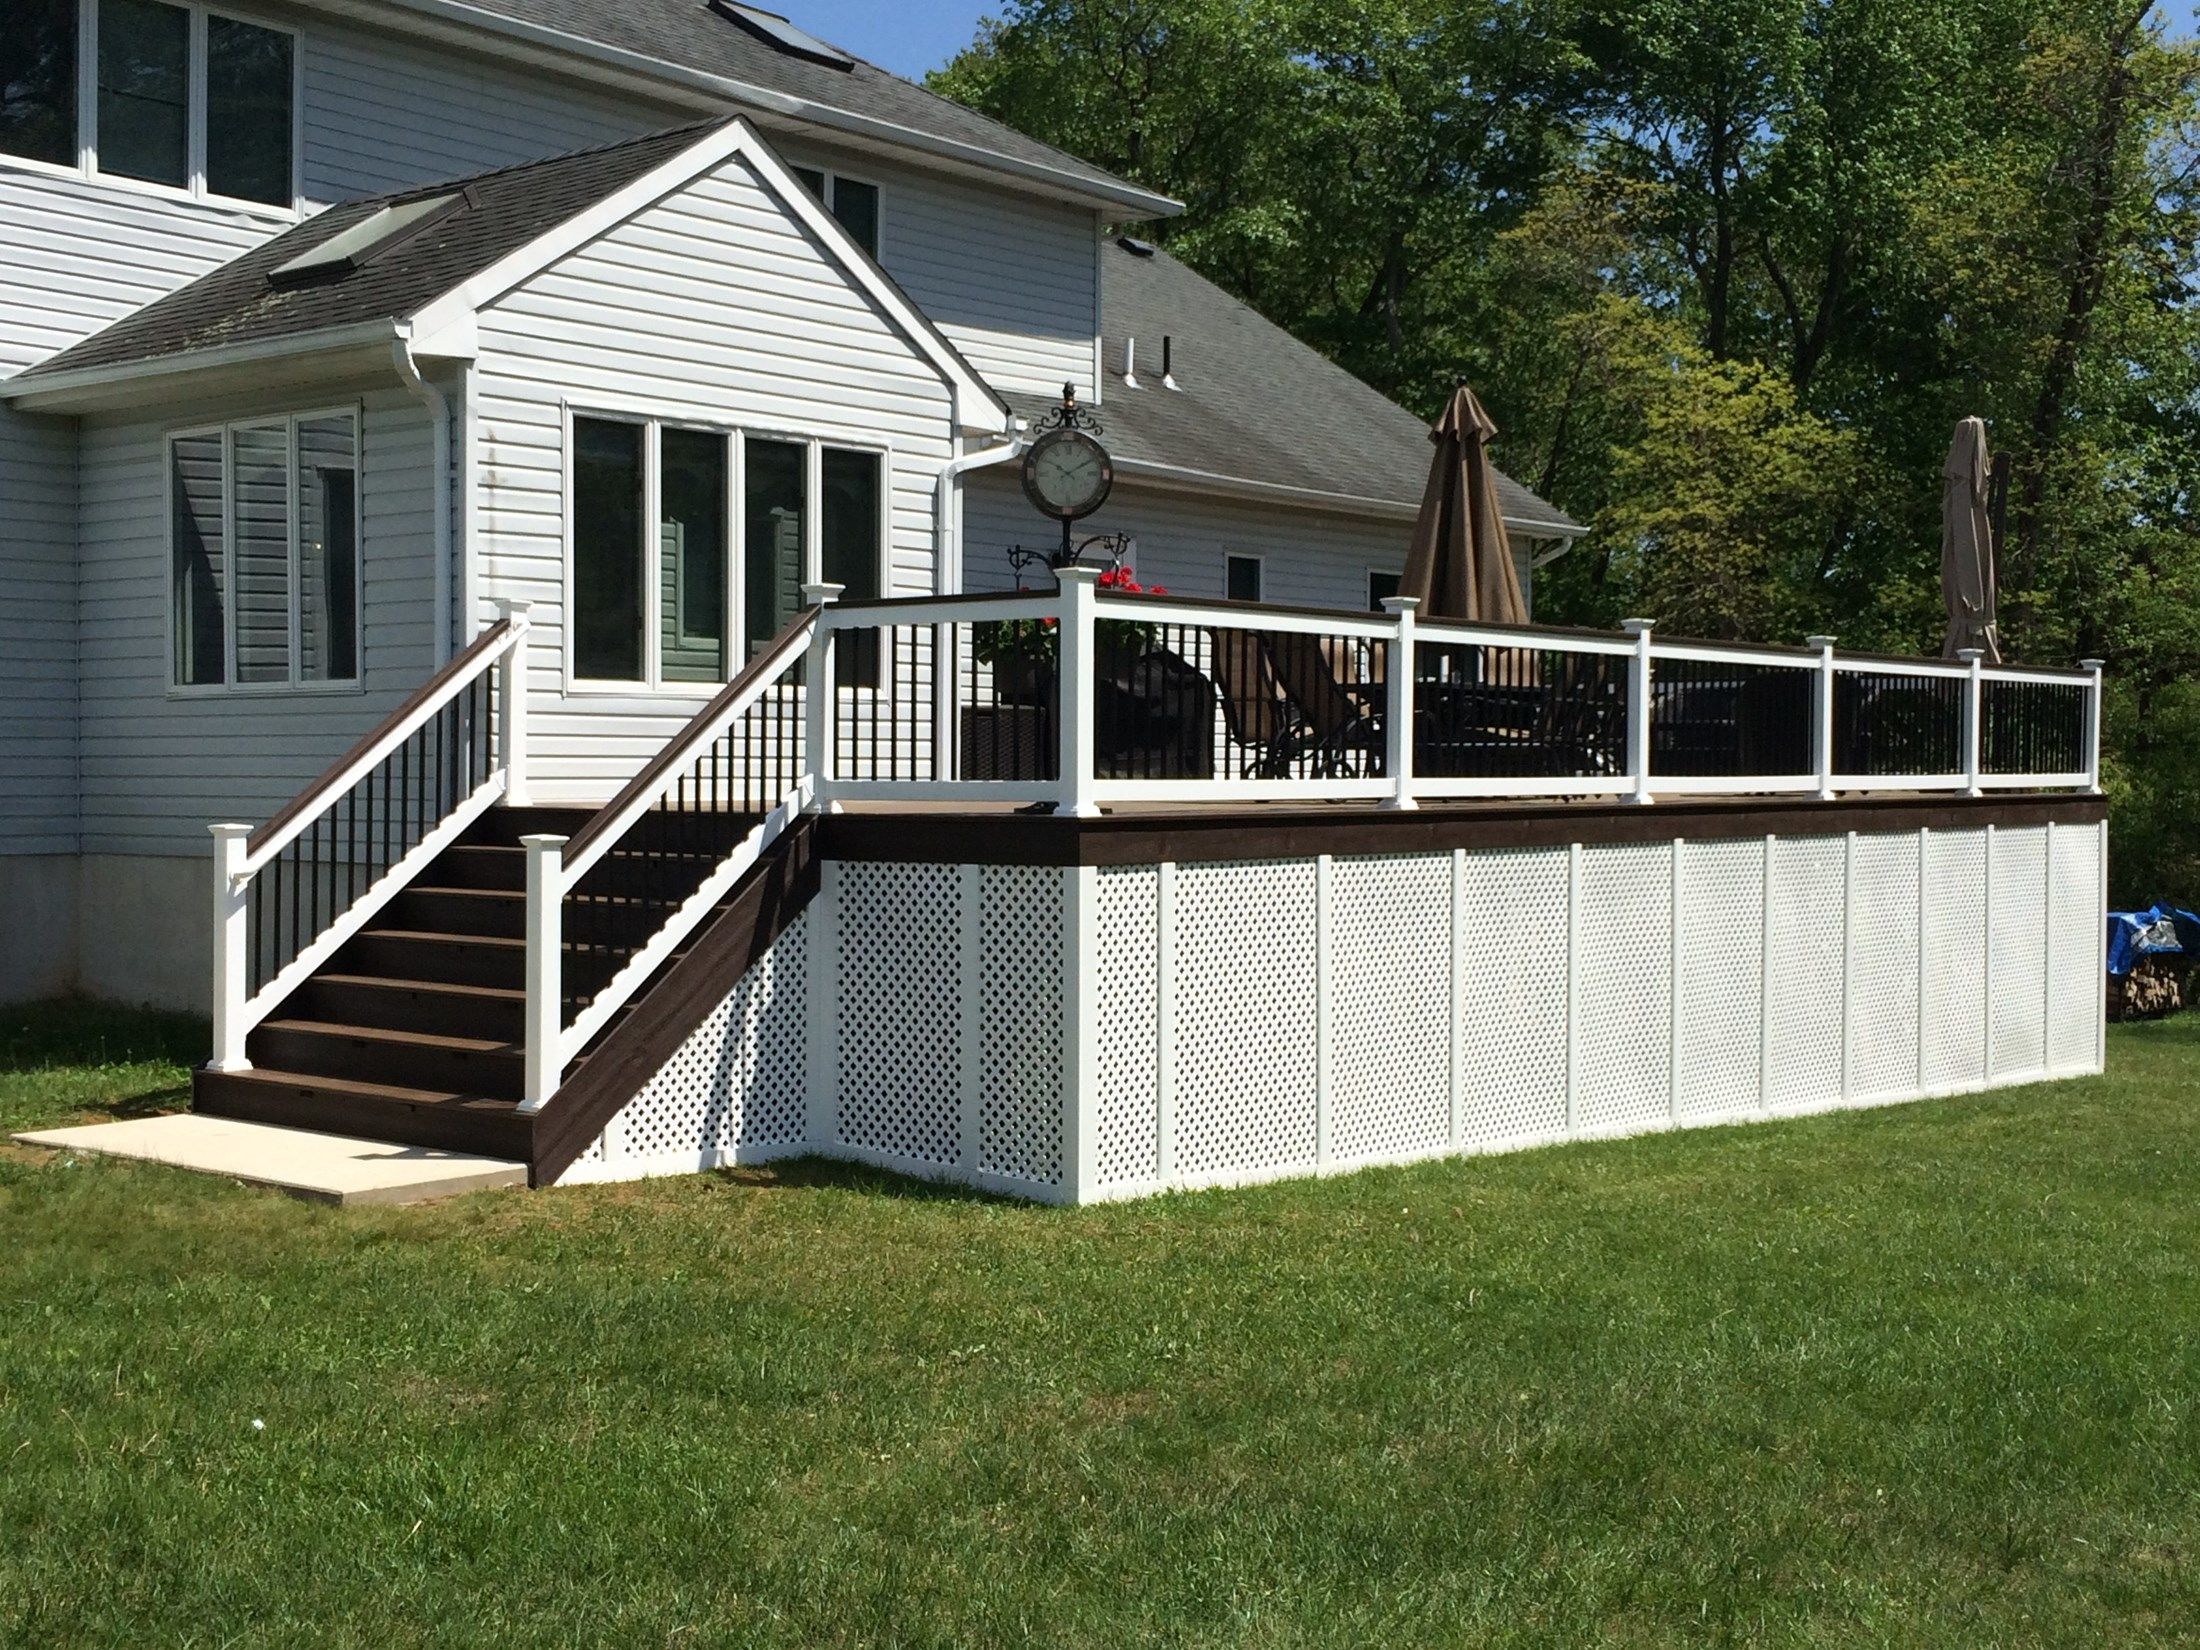 Custom Deck in Manalapan NJ - Picture 3253